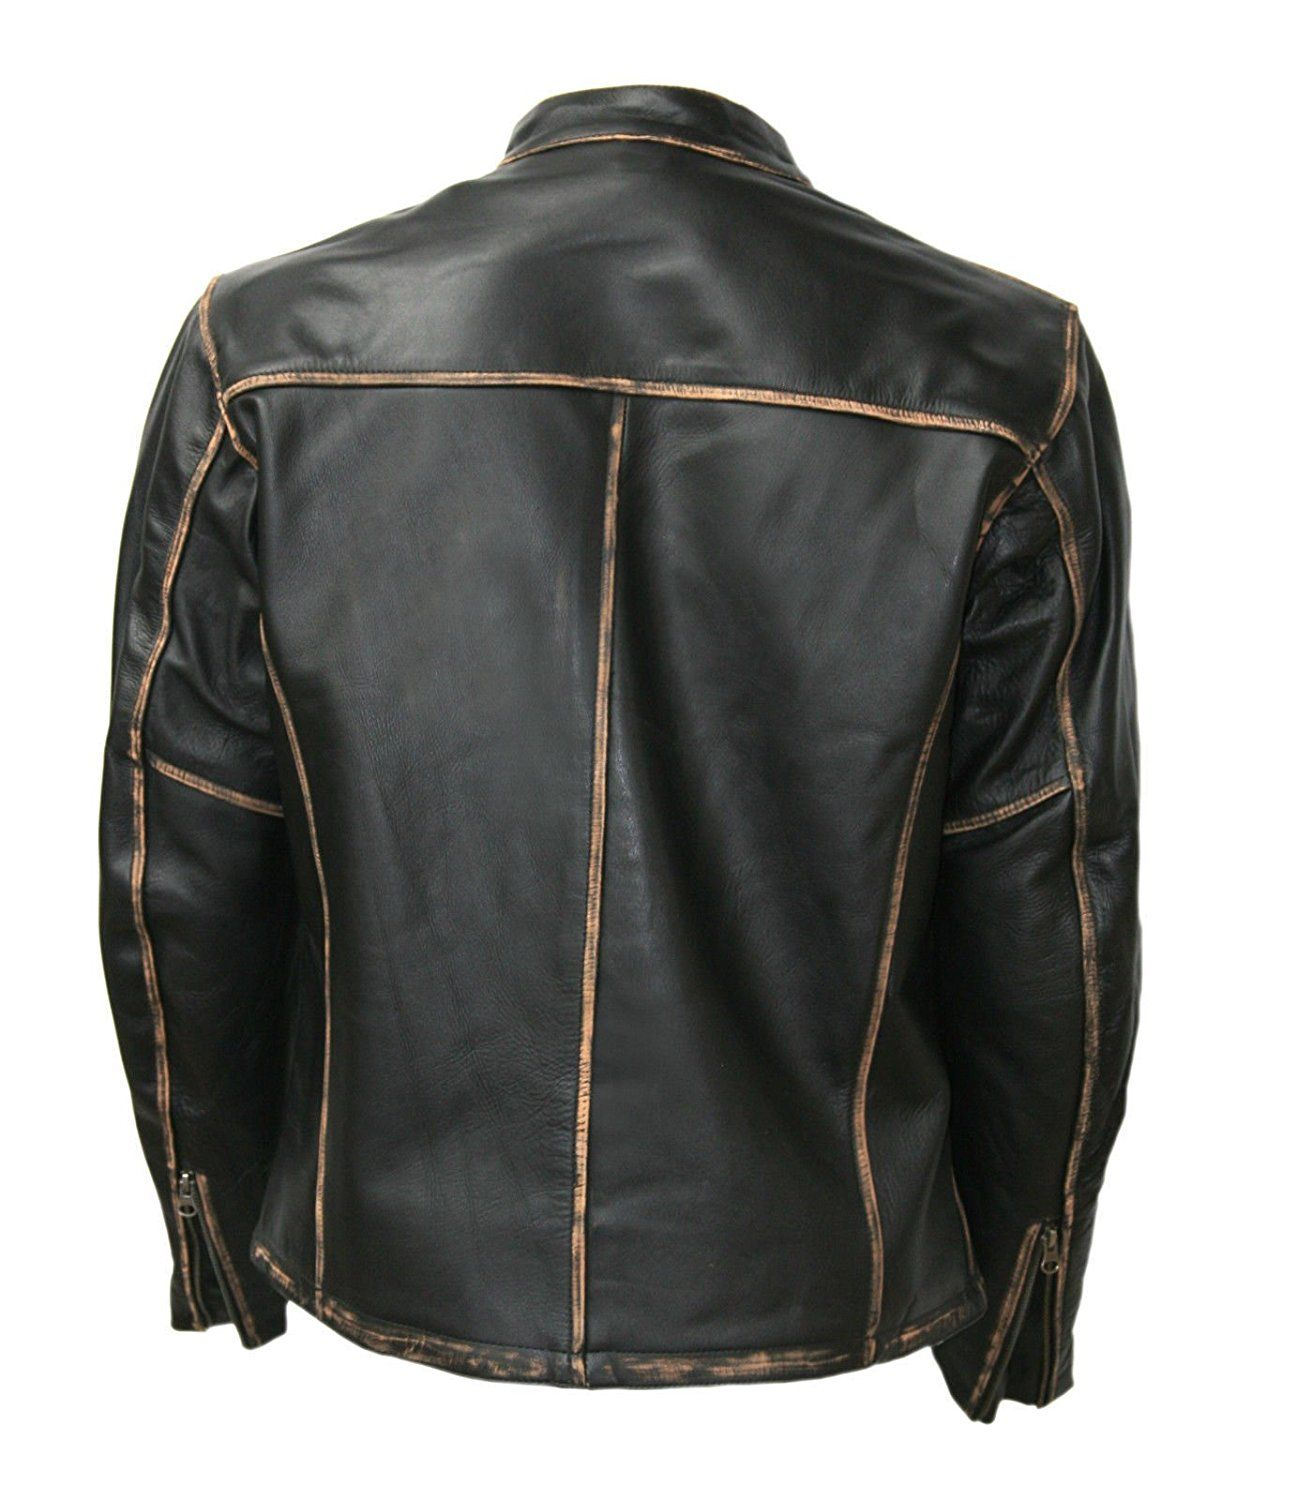 BIKER MOTORCYCLE FADED SEAMS VINTAGE LEATHER JACKETS FOR SALE | JACKETS FOR SALE | JACKETS FOR MENS at Amazon Men's Clothing store: